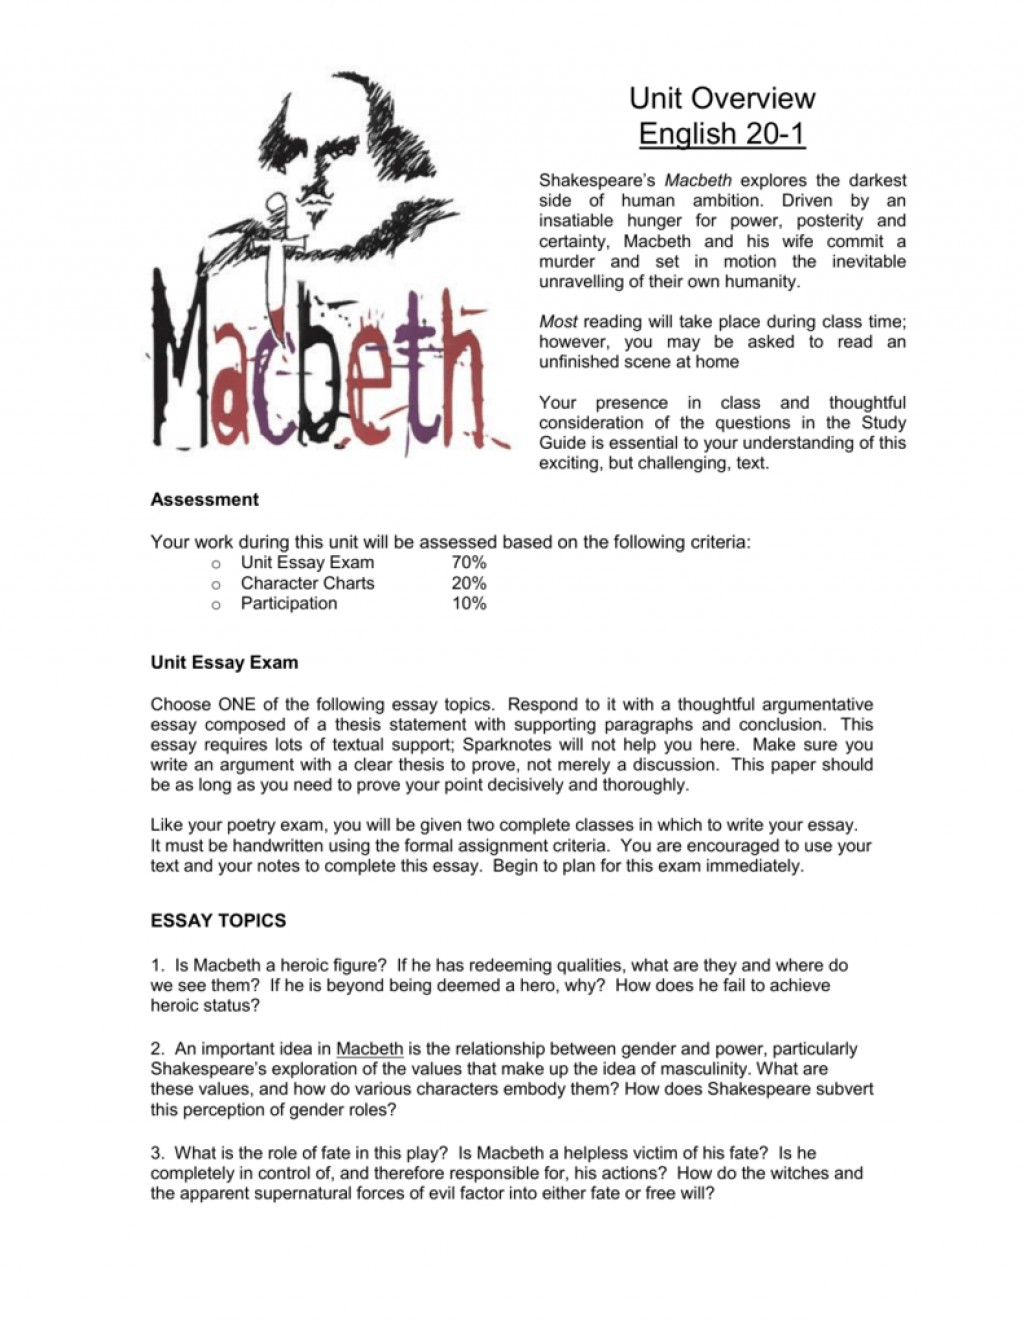 009 Essay Example 008041500 1 On Marvelous Macbeth And Lady Macbeth's Relationship Literary As A Tragic Hero Plan Large